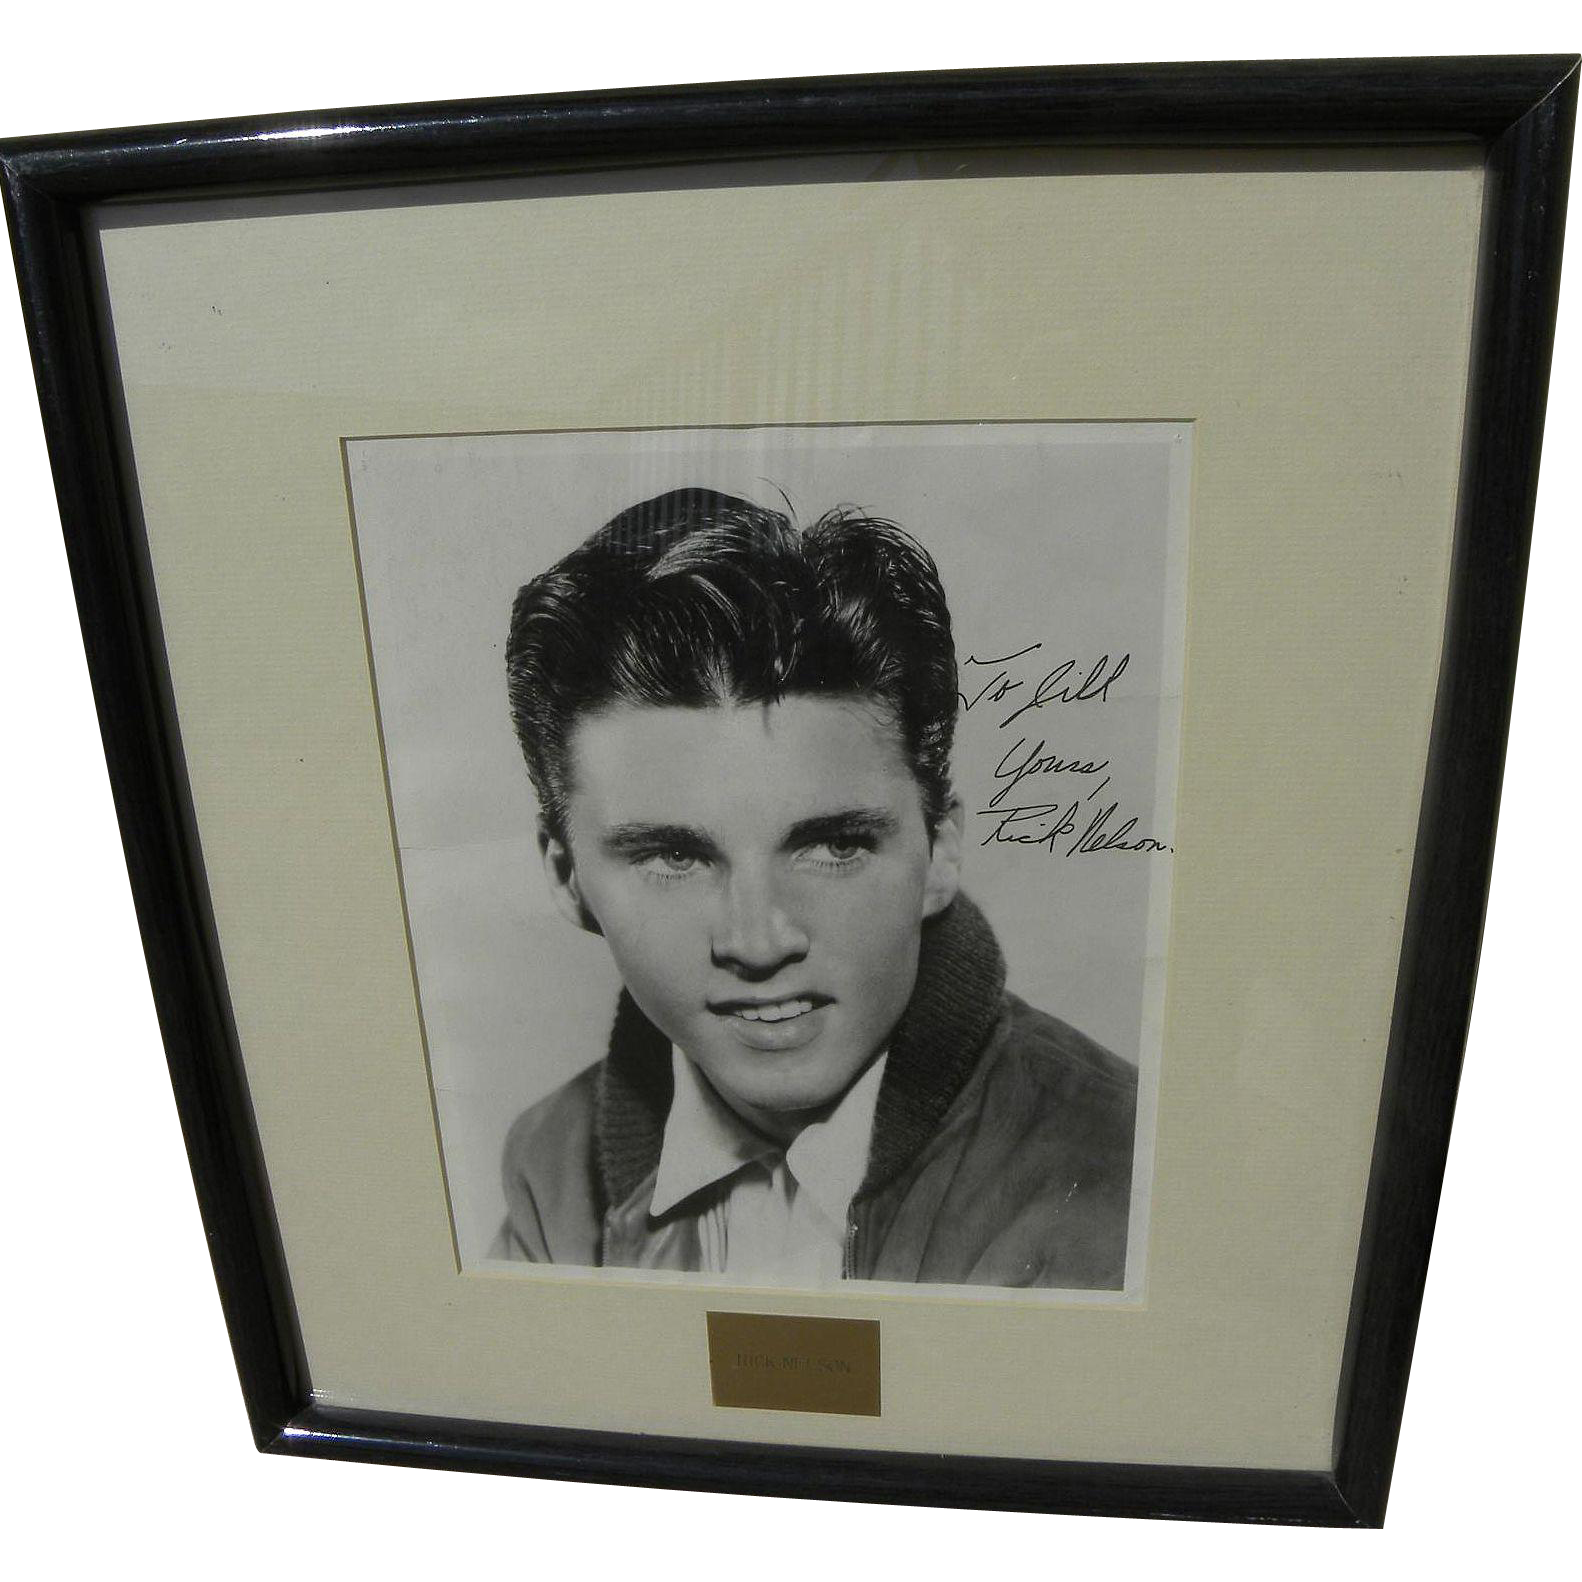 "RICK ""RICKY"" NELSON (1940-1985) autographed inscribed photo of the actor musician singer songwriter"